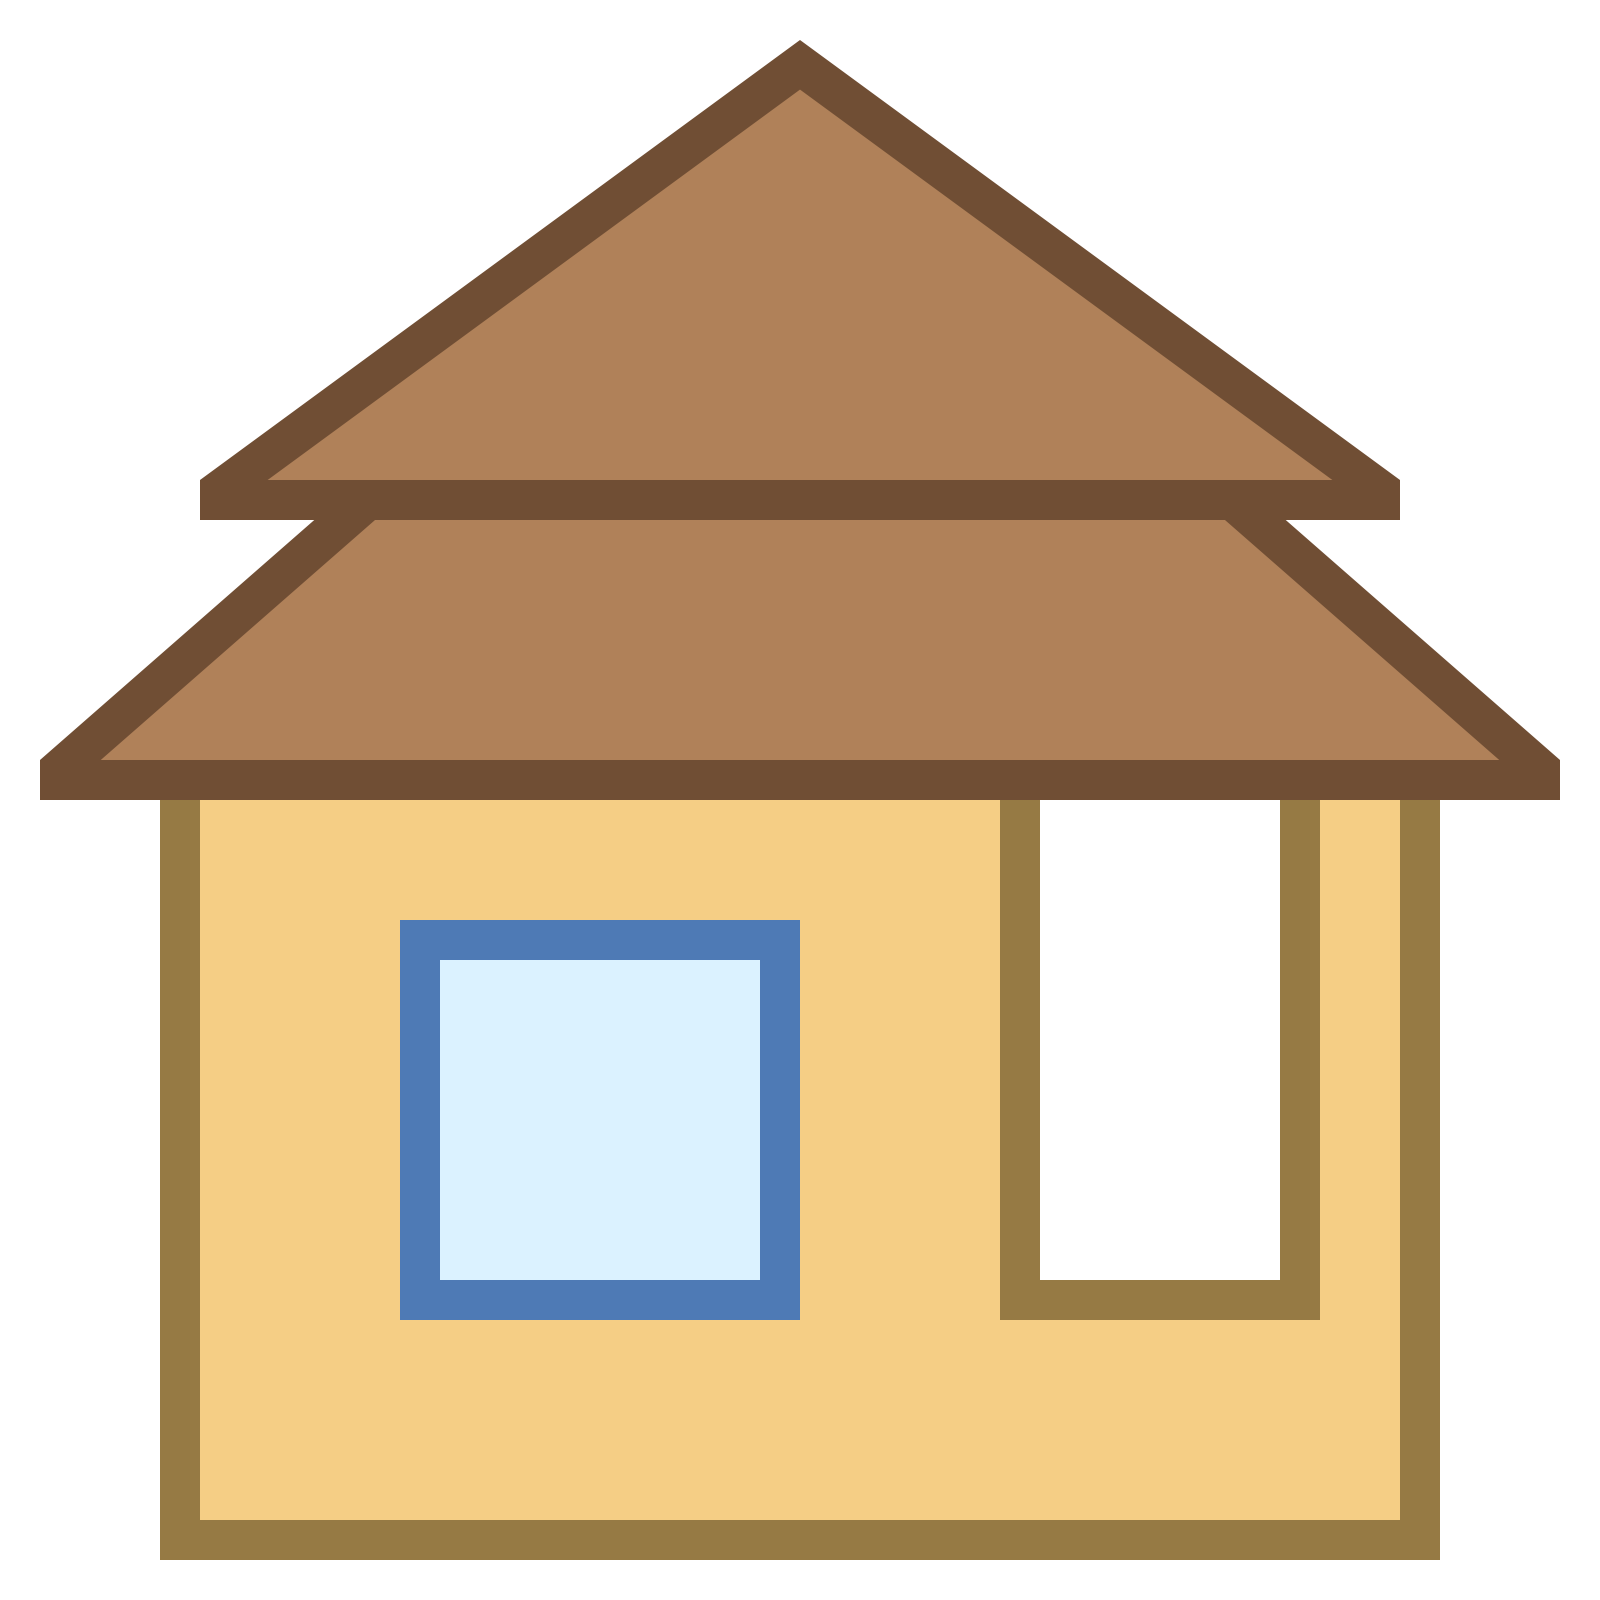 Cottage clipart free clip art. Bungalow icon download at